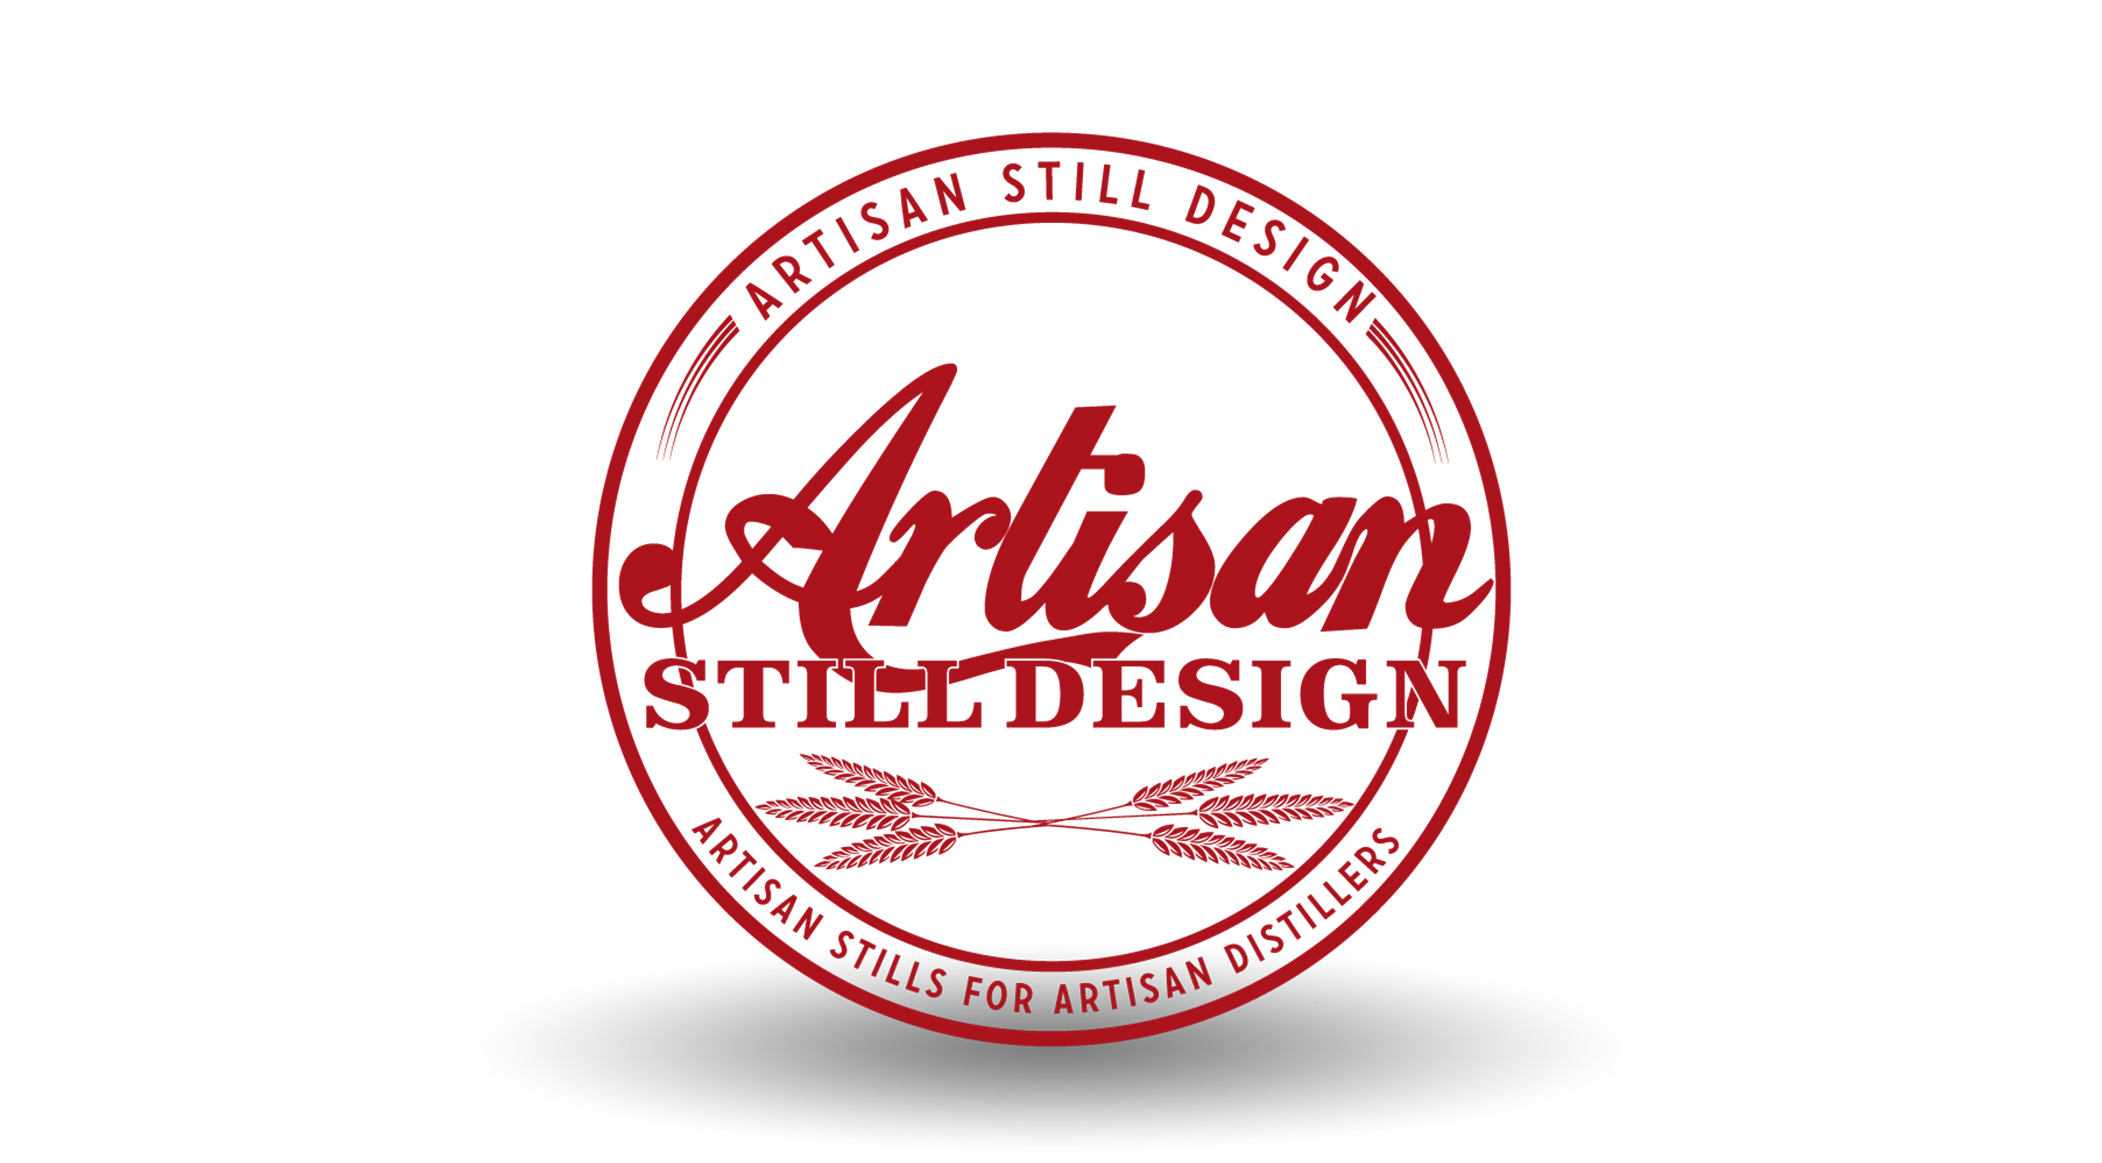 Artisan Still Design